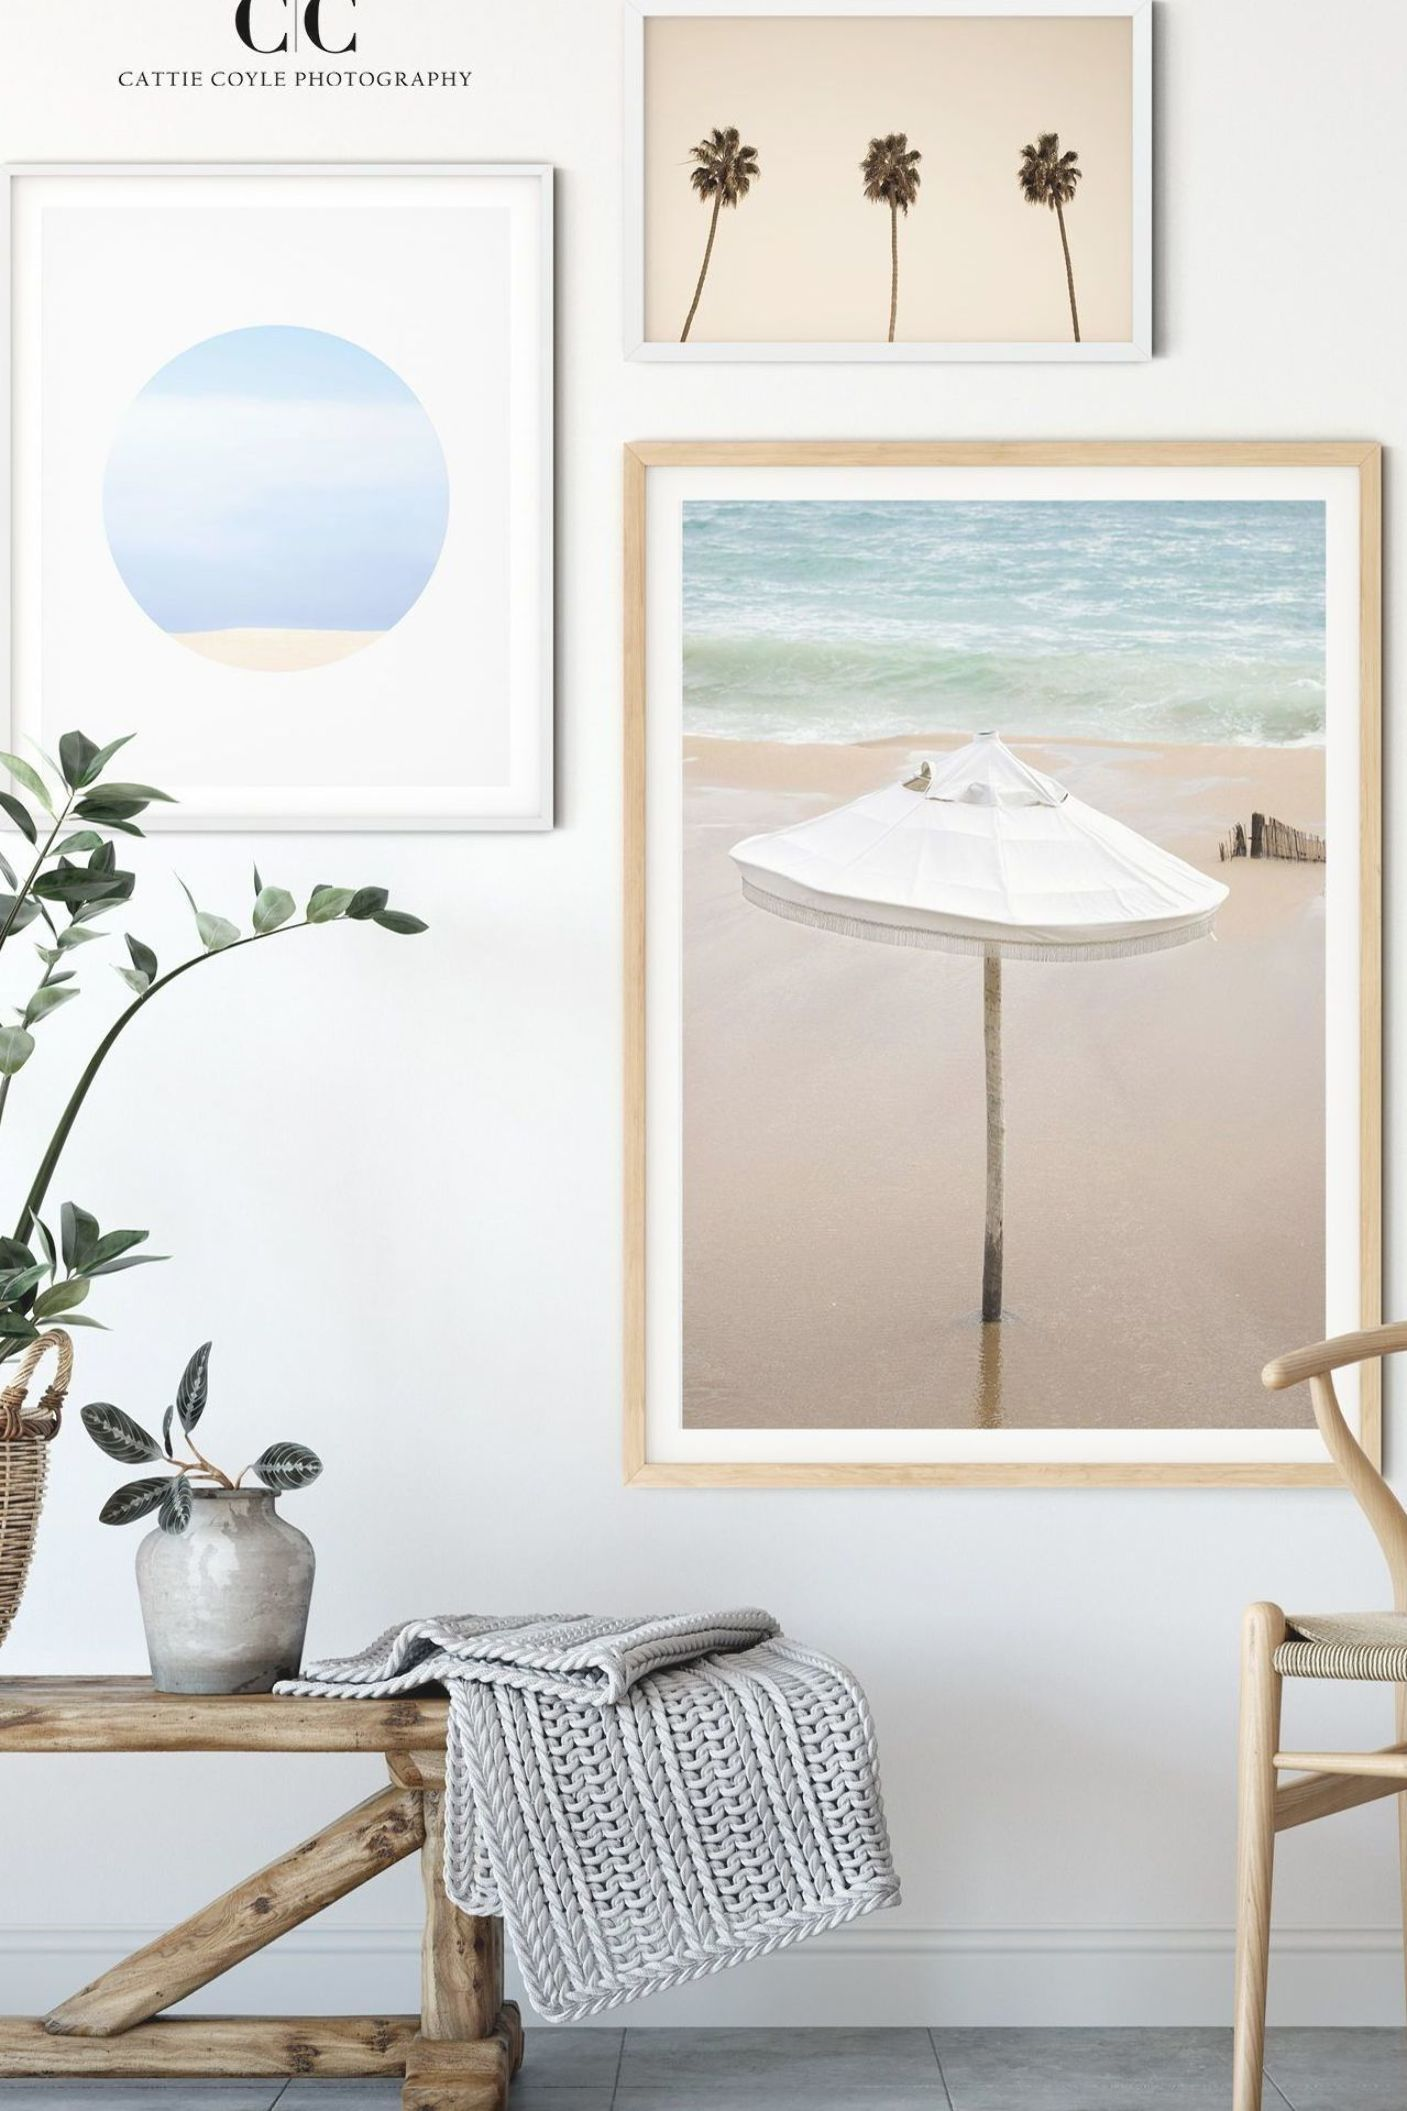 Coastal Gallery Wall With Blue And Neutral Art A Beautiful Way To Bring The Beach Into Your Home By Cre In 2020 Coastal Gallery Wall Coastal Wall Art Art Gallery Wall